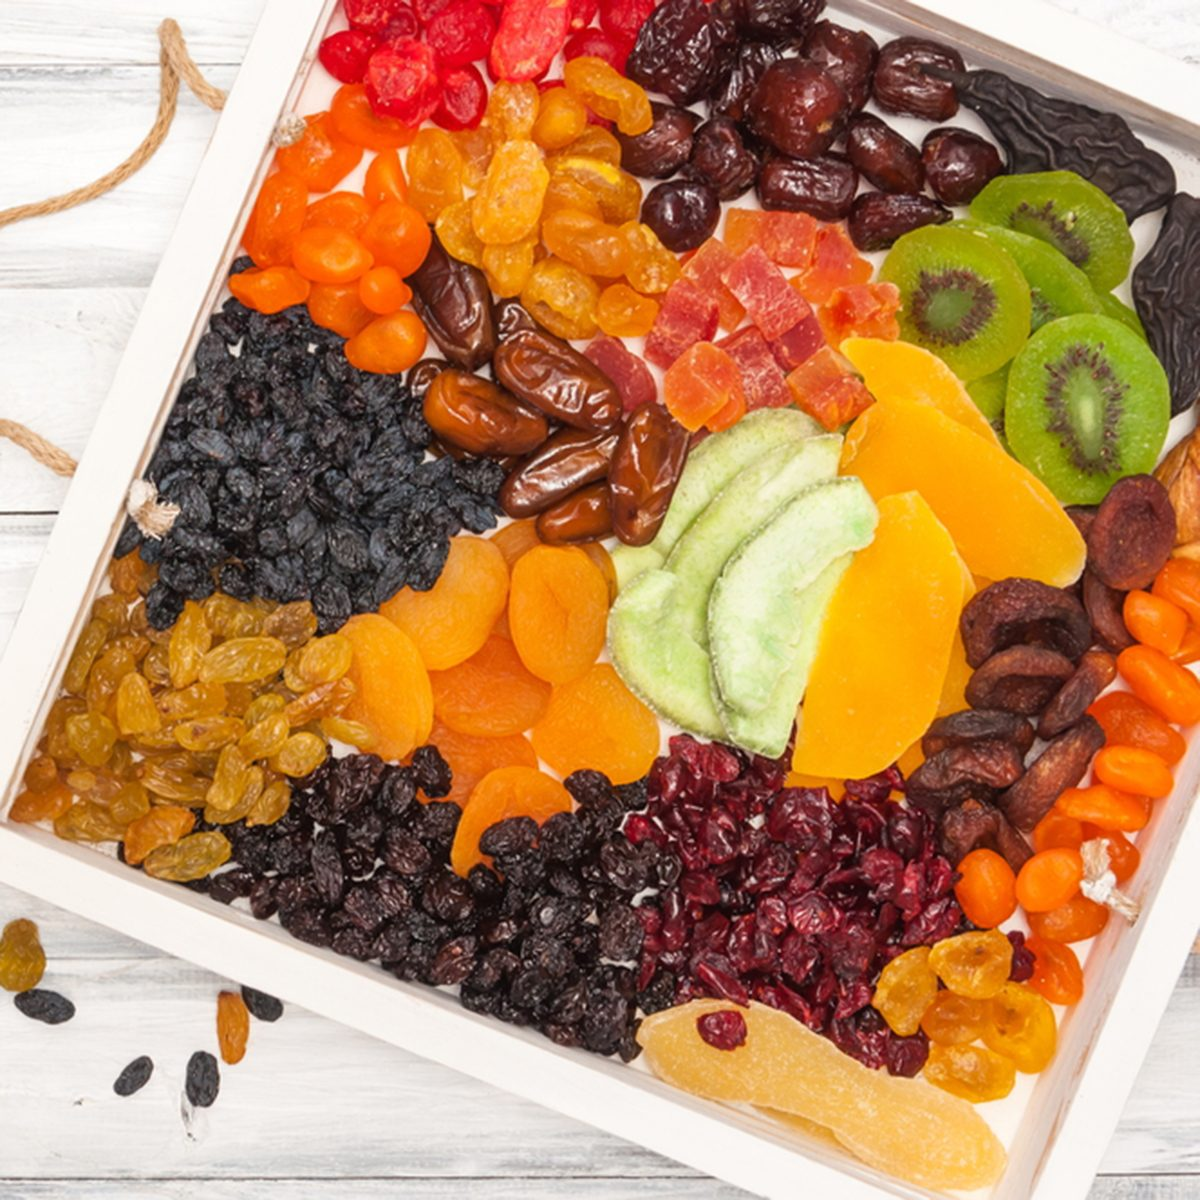 Mix of dried and sun-dried fruits, dried fruits in a wooden box on a white wooden background.